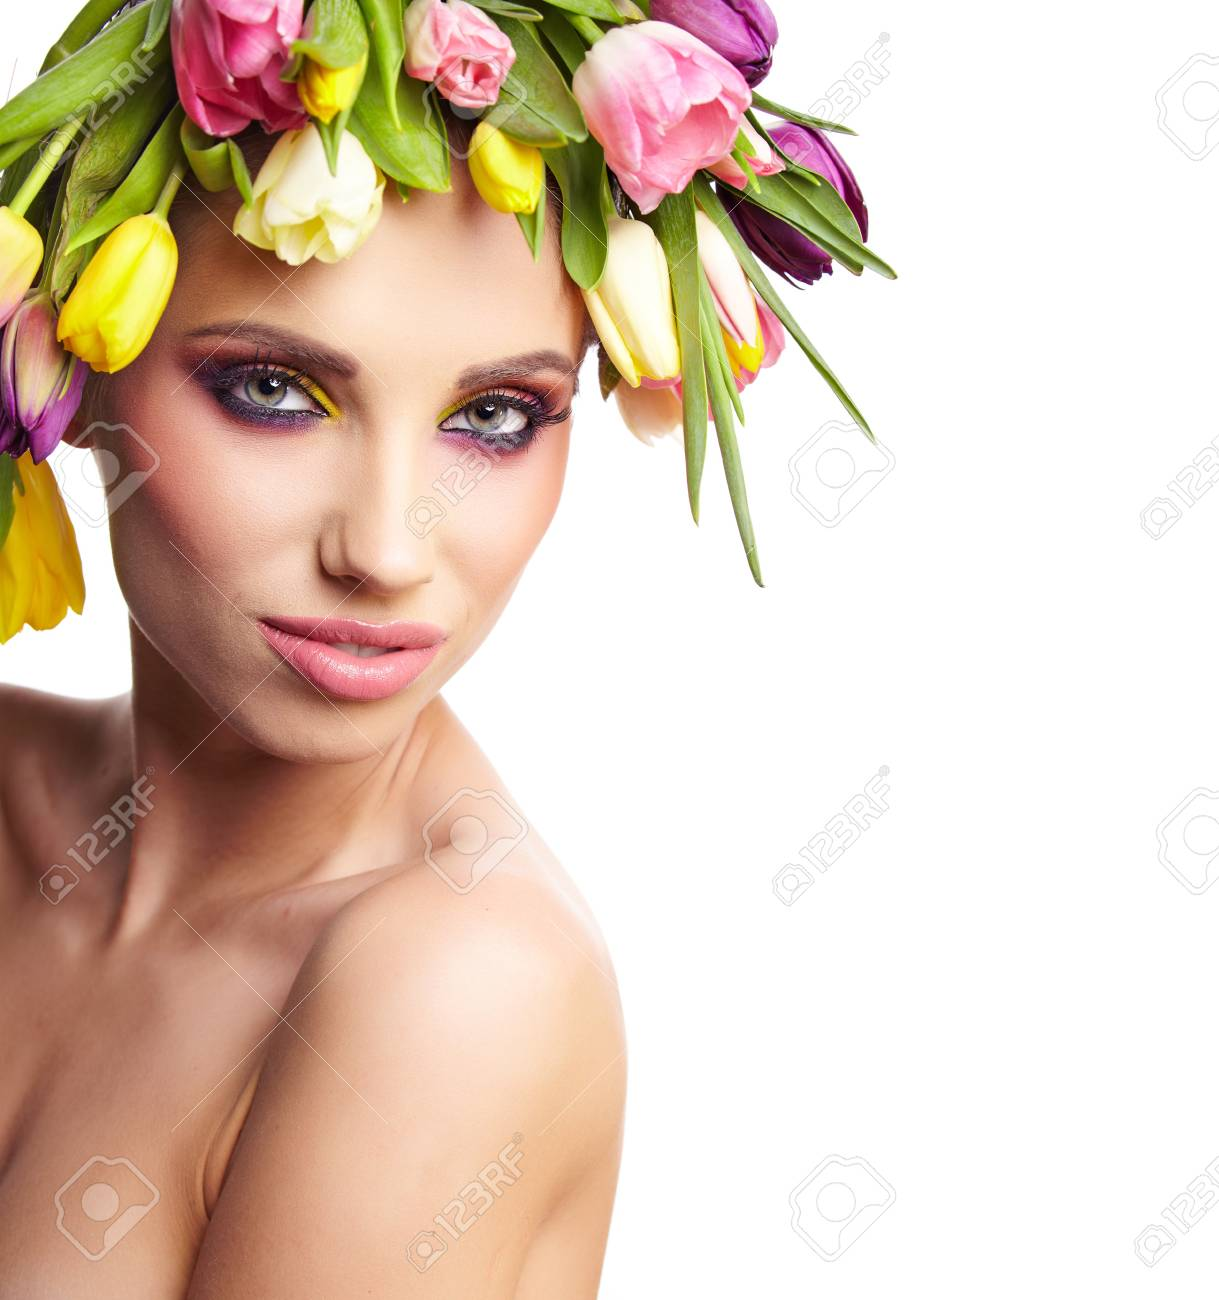 fashion model with large hairstyle and flowers in her hair Stock Photo - 19349529